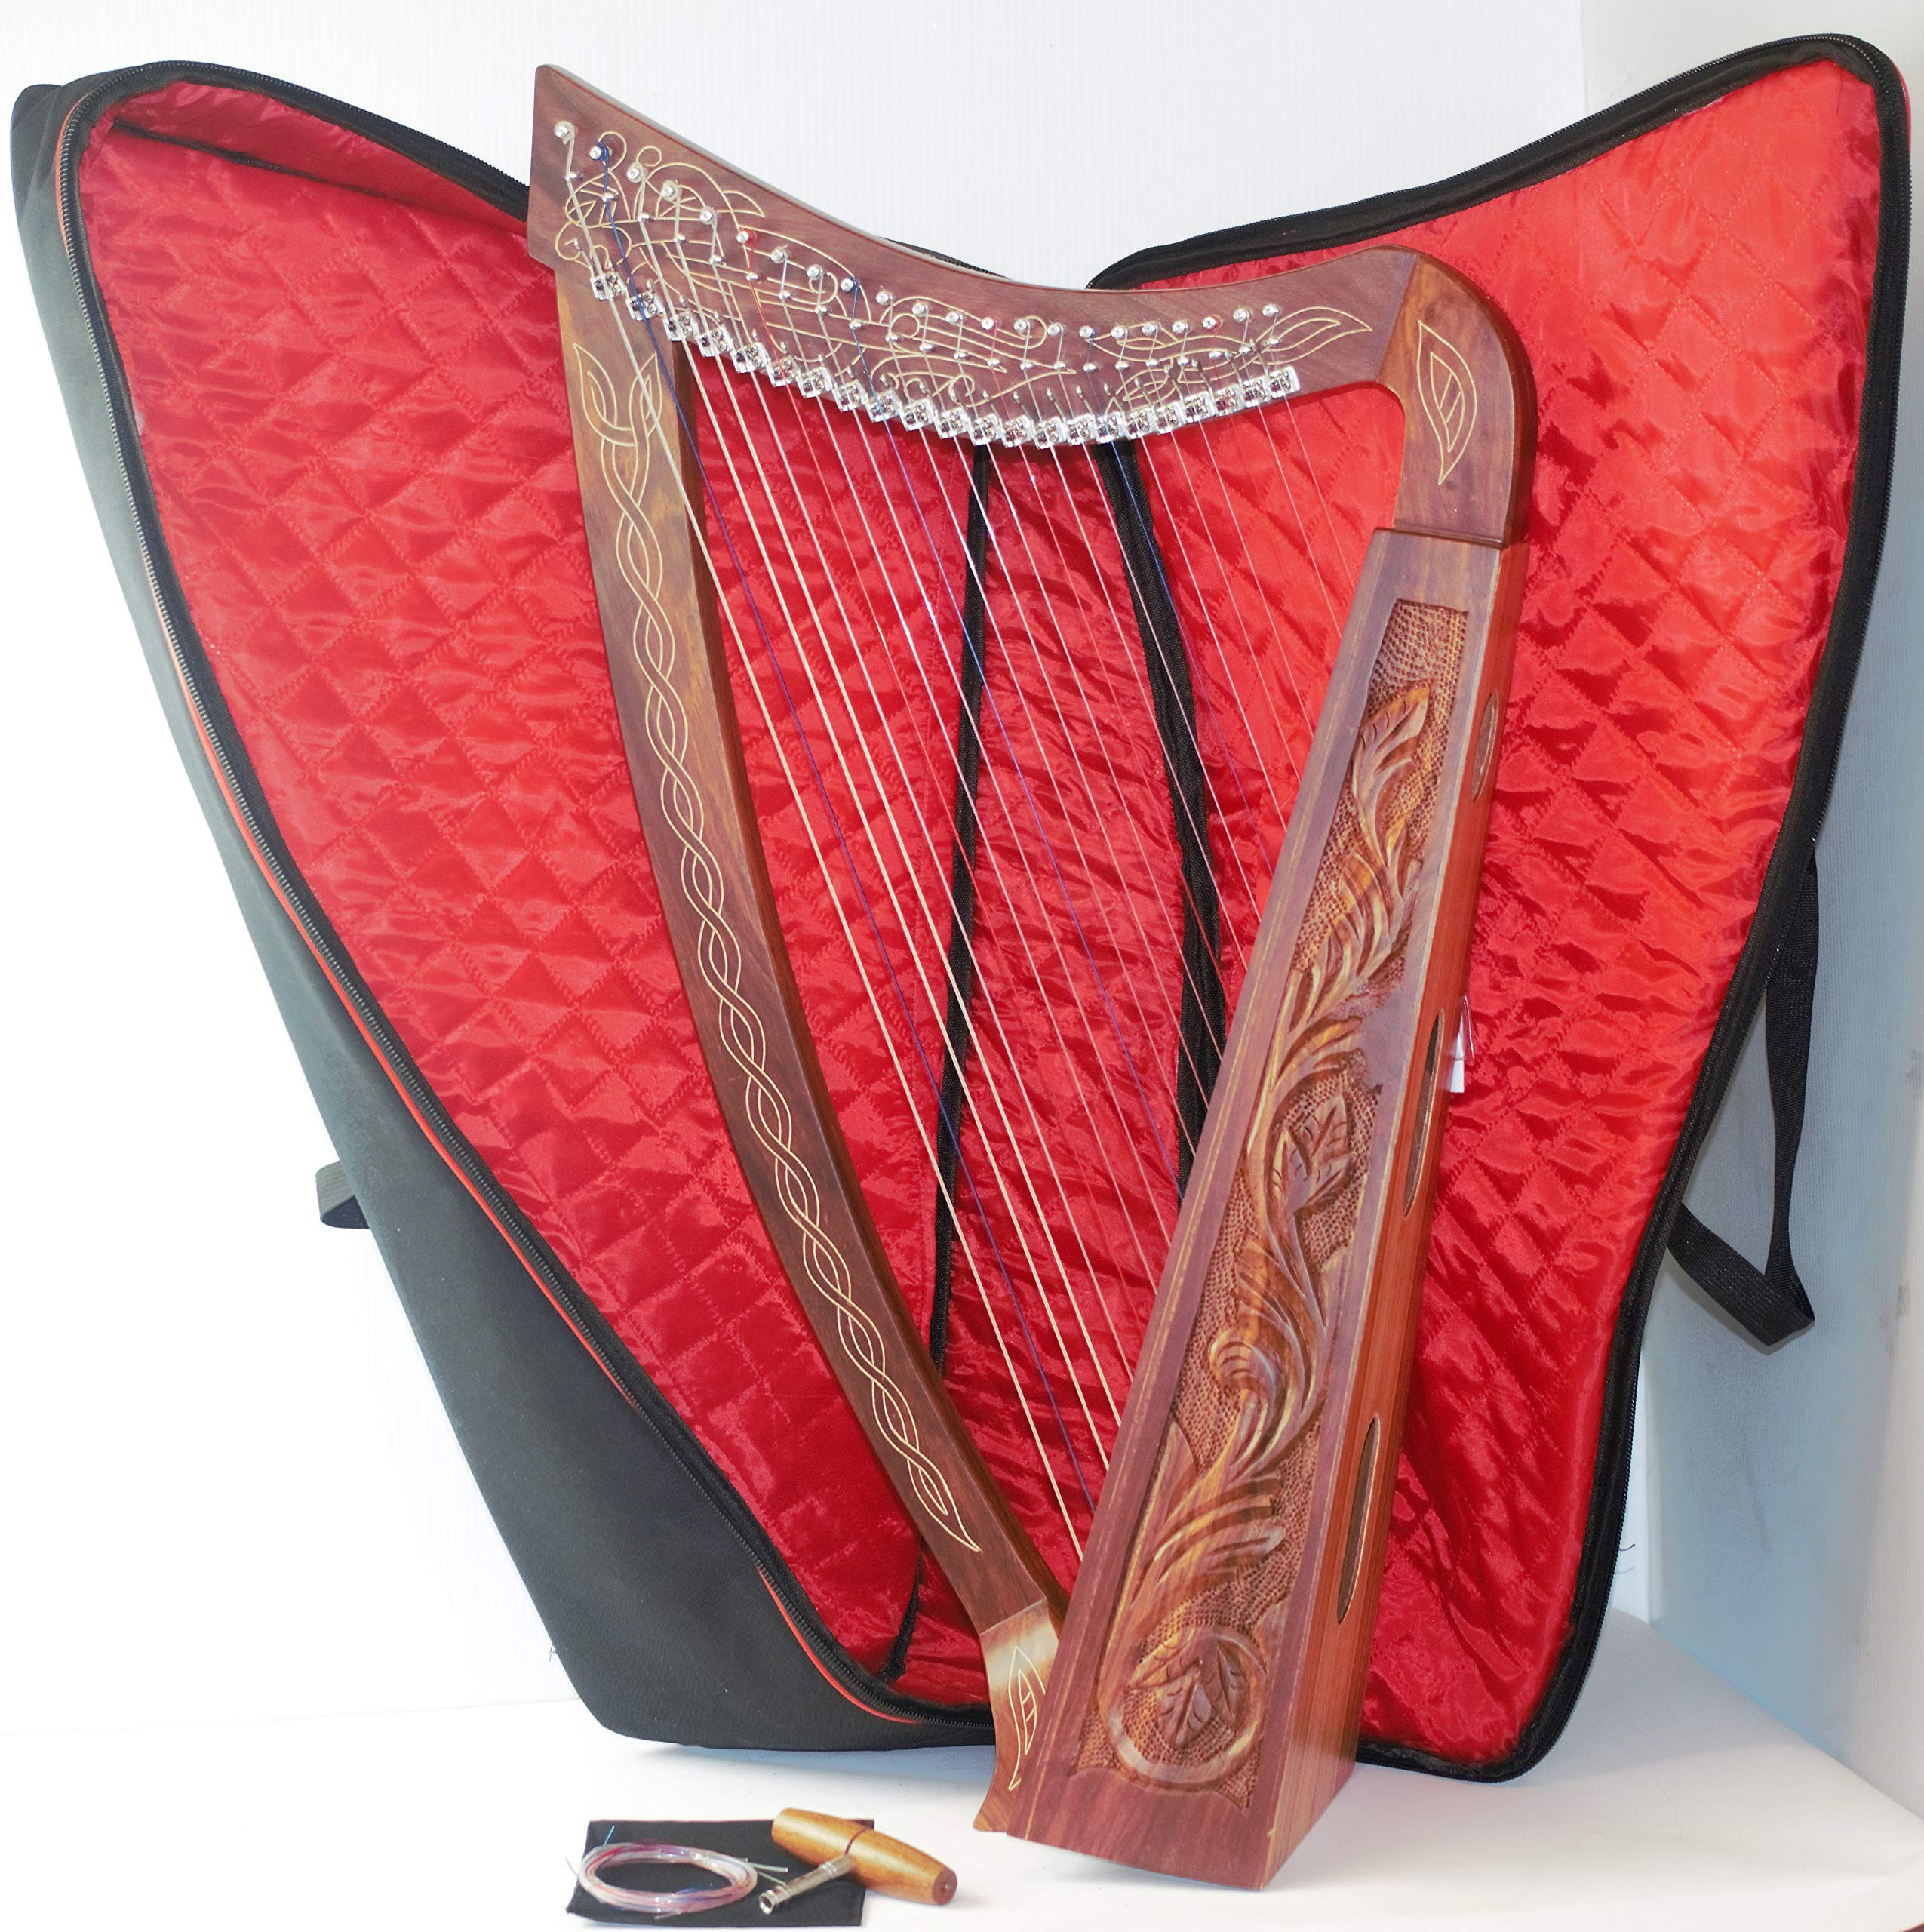 36 INCH 22 Strings Lever Harp Celtic Irish Style Solid wood free Carrying Bag strings and Tuner by Sturgis